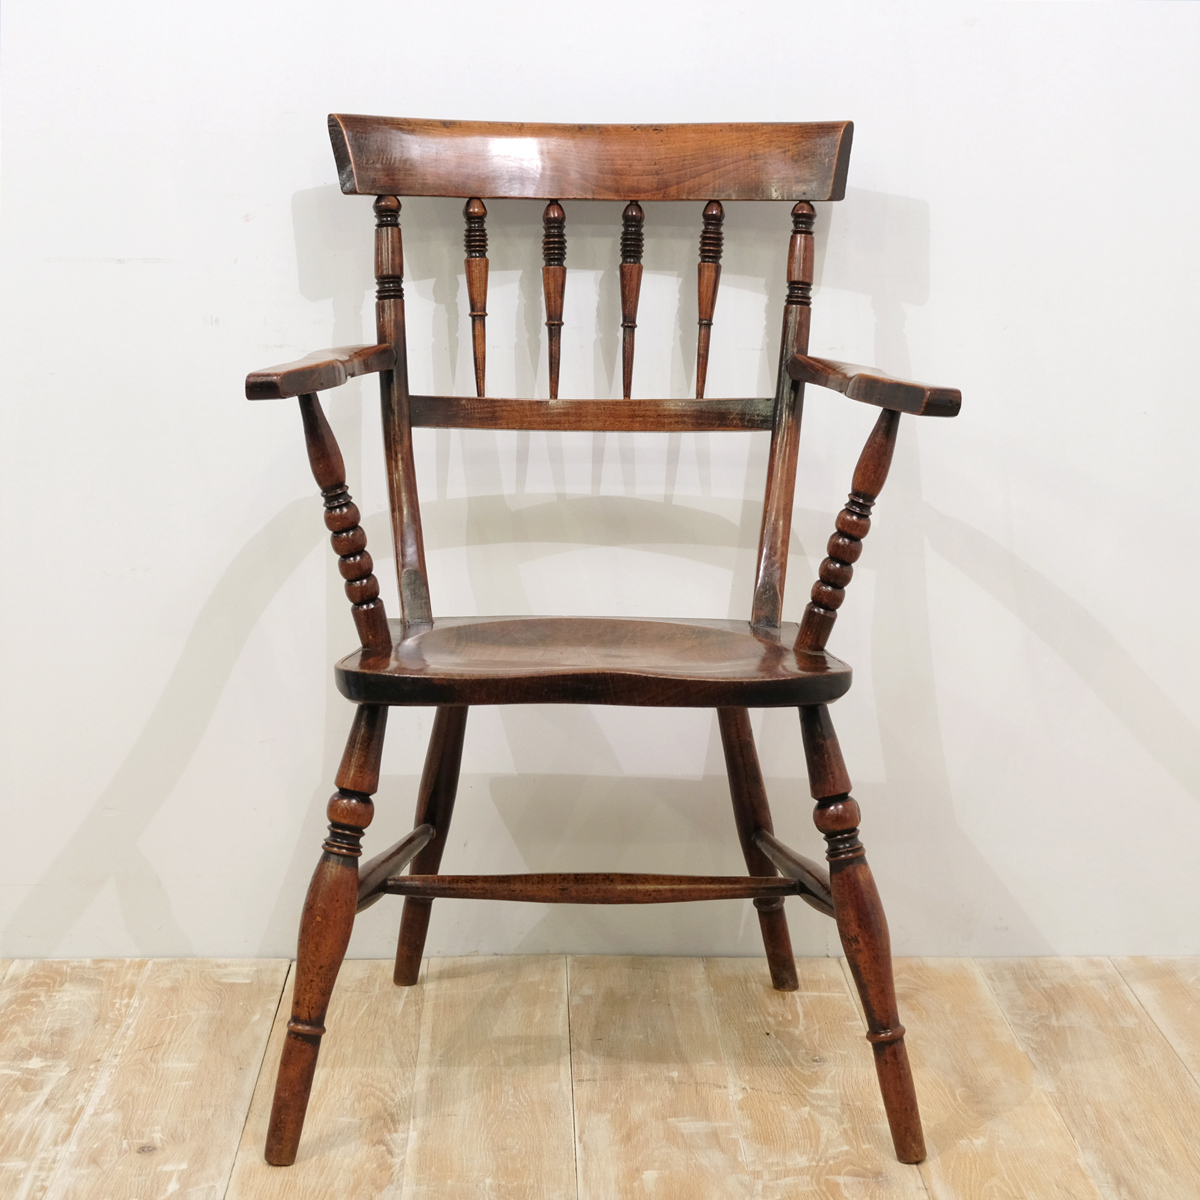 Early Fruitwood Suffolk Chair — Cunningham White's